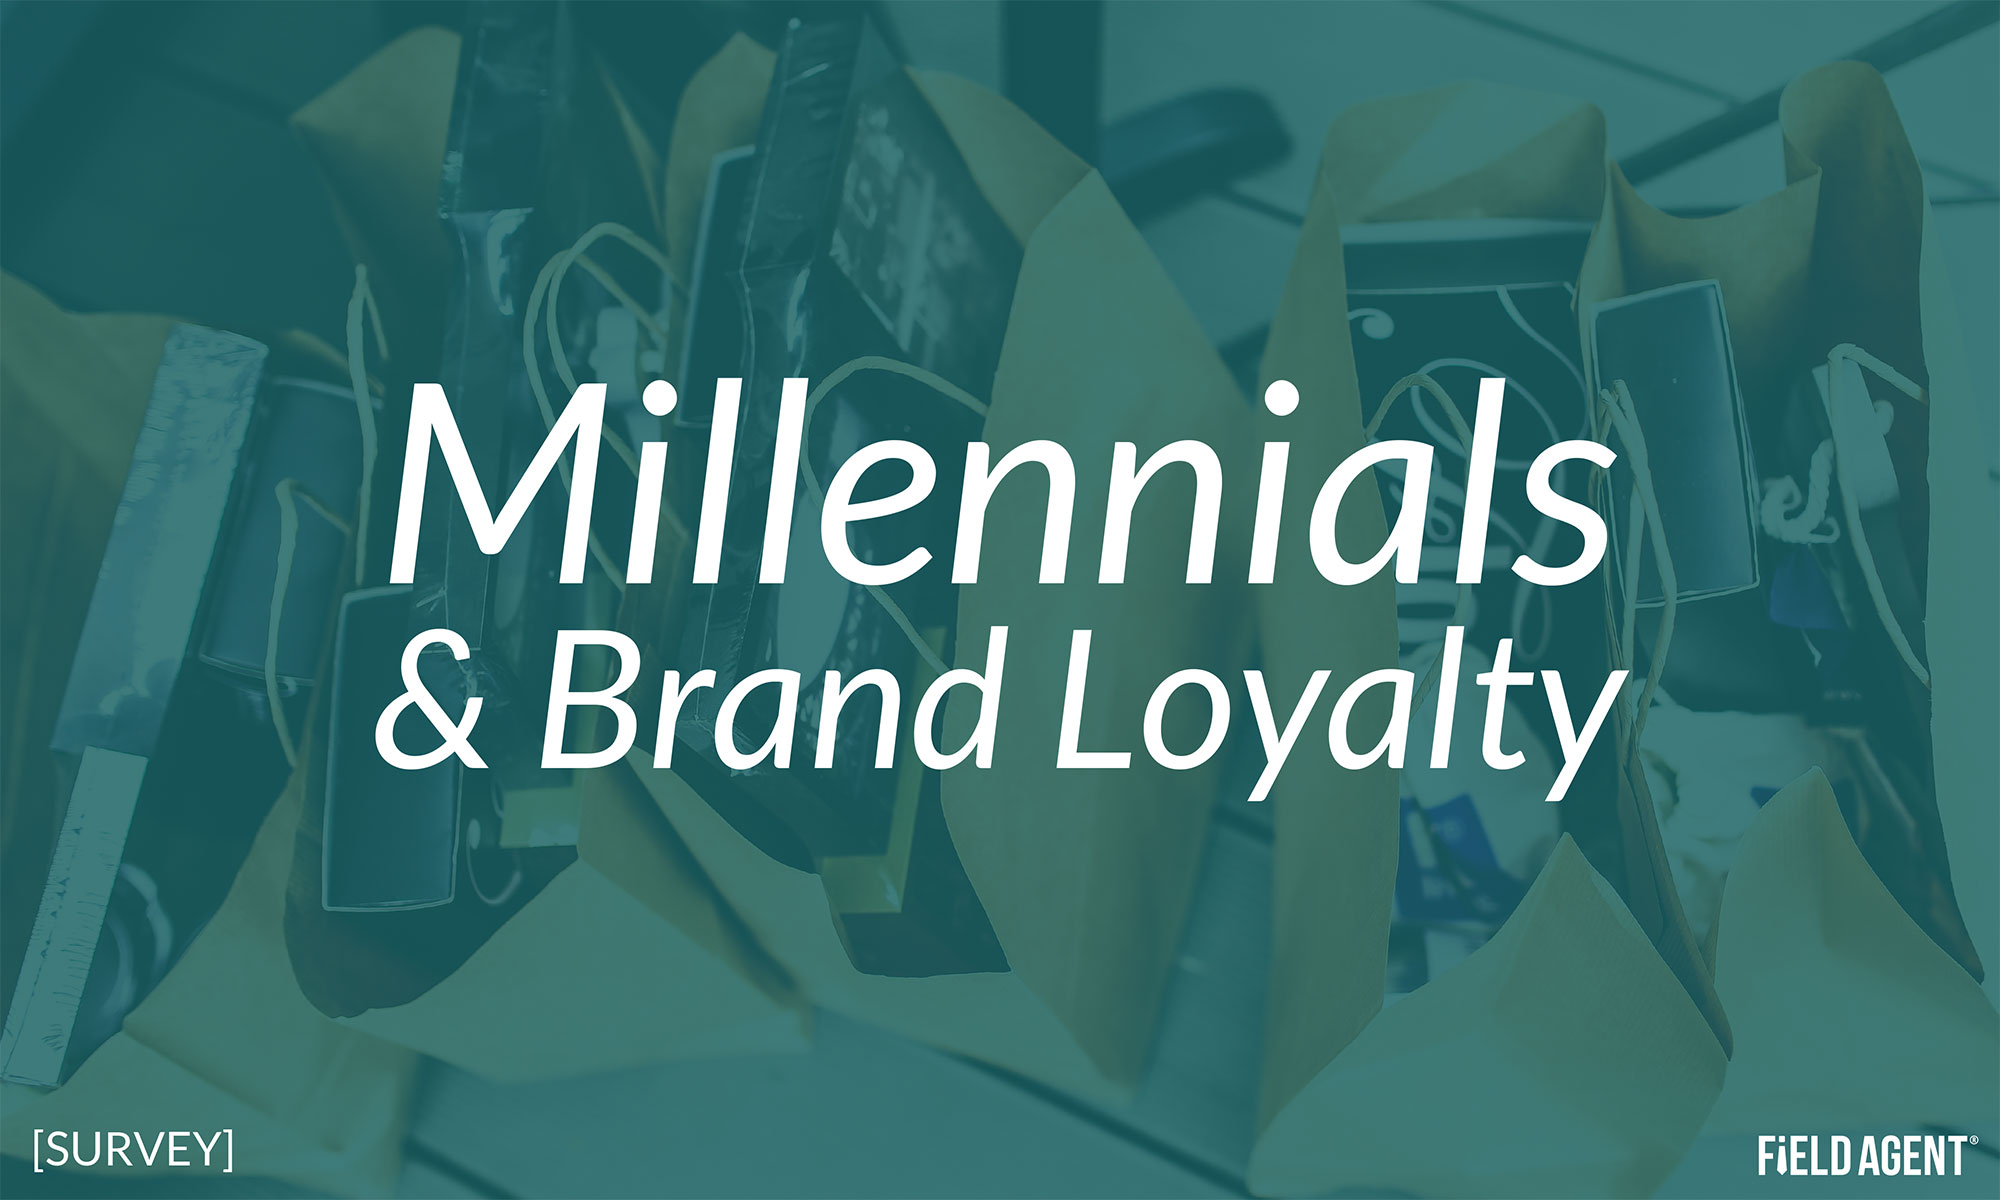 Millennials and Brand Loyalty: A Survey